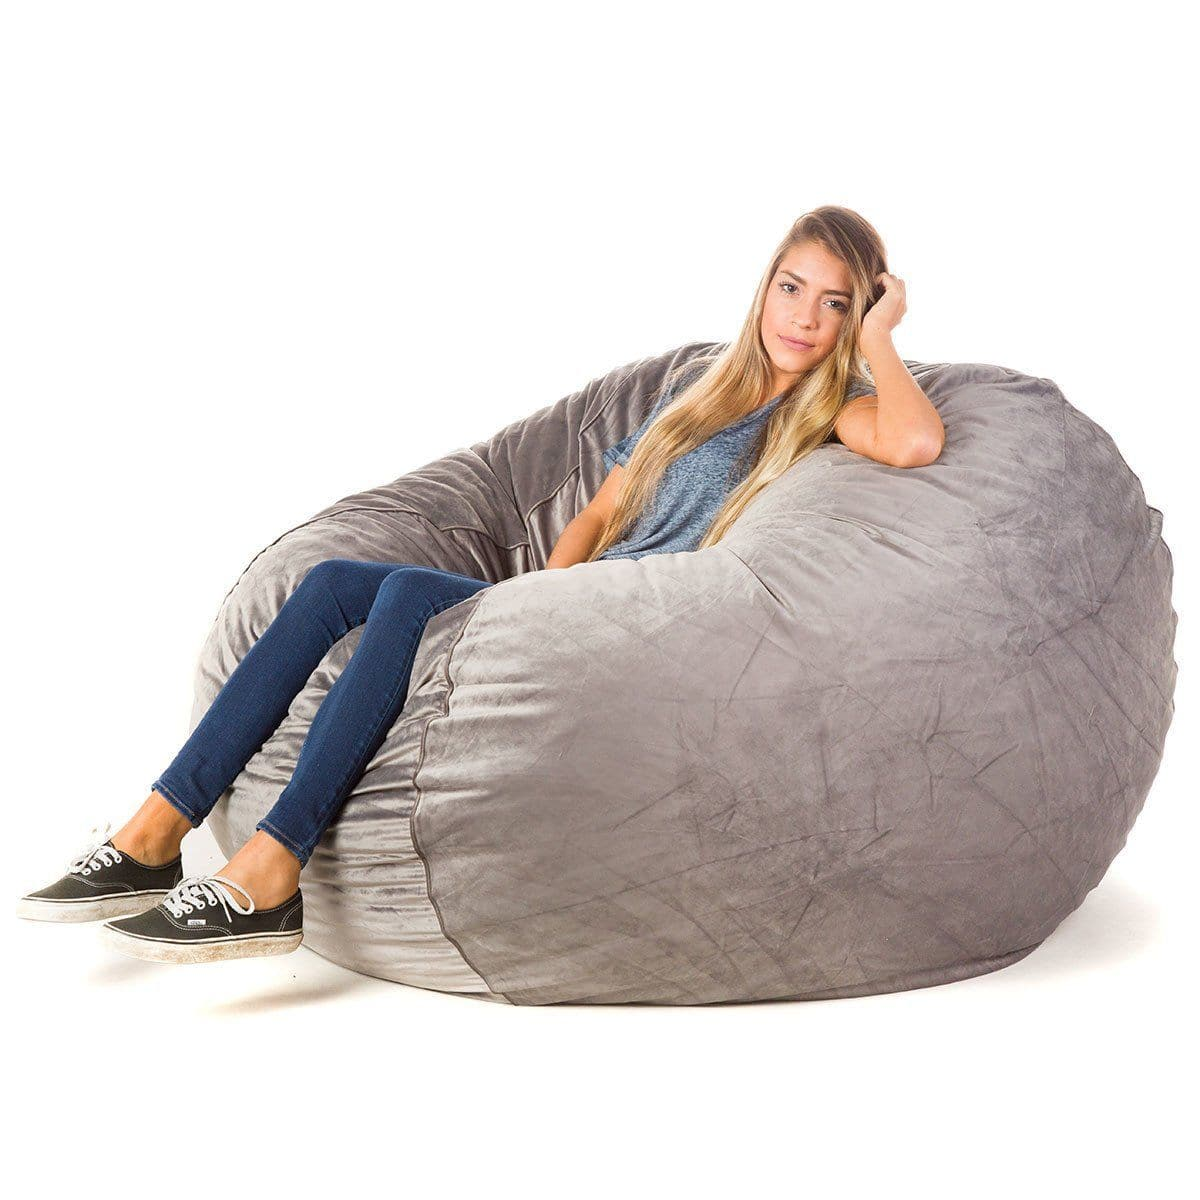 bean bag chairs white porch cordaroy s convertible bags there a bed inside posh product details